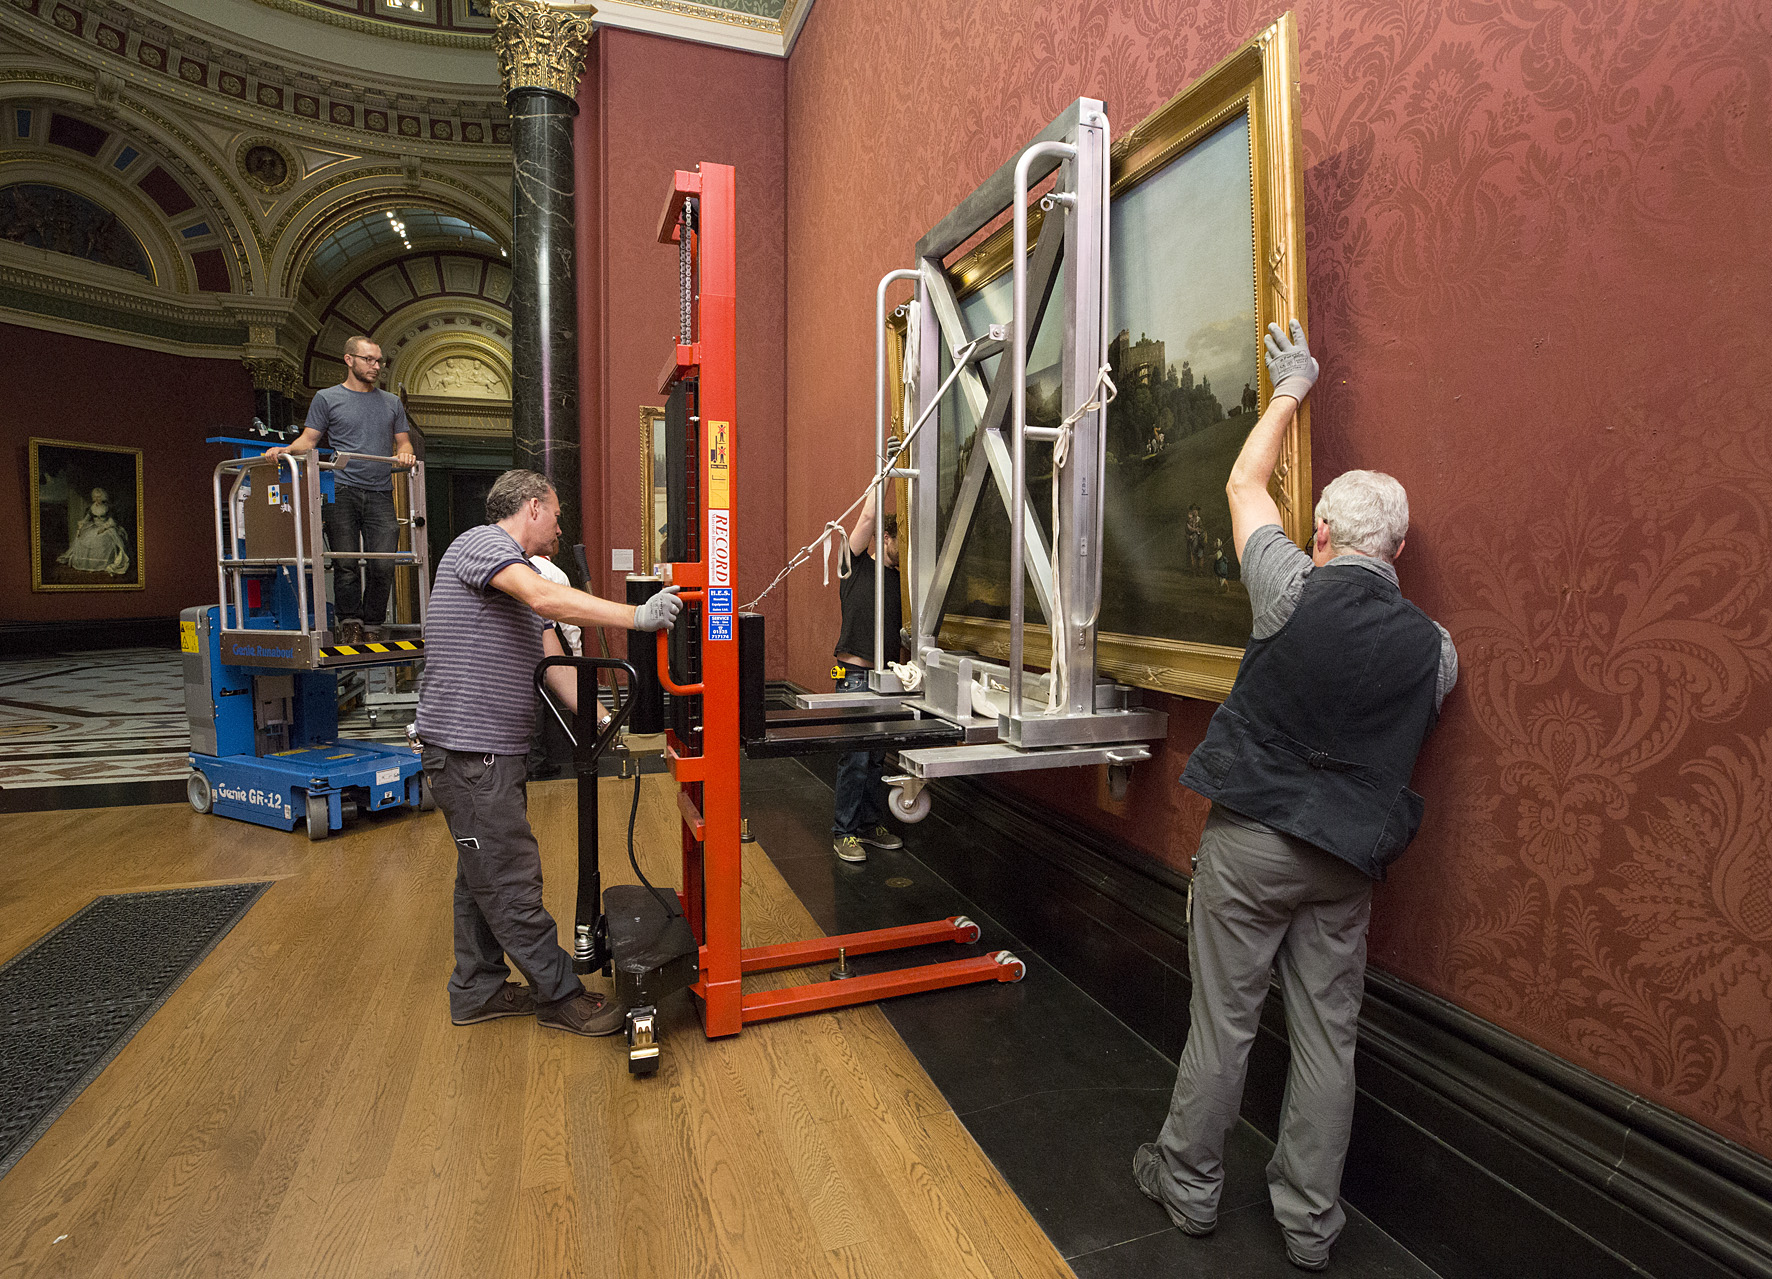 The painting being installed at The National Gallery (The National Gallery, London)